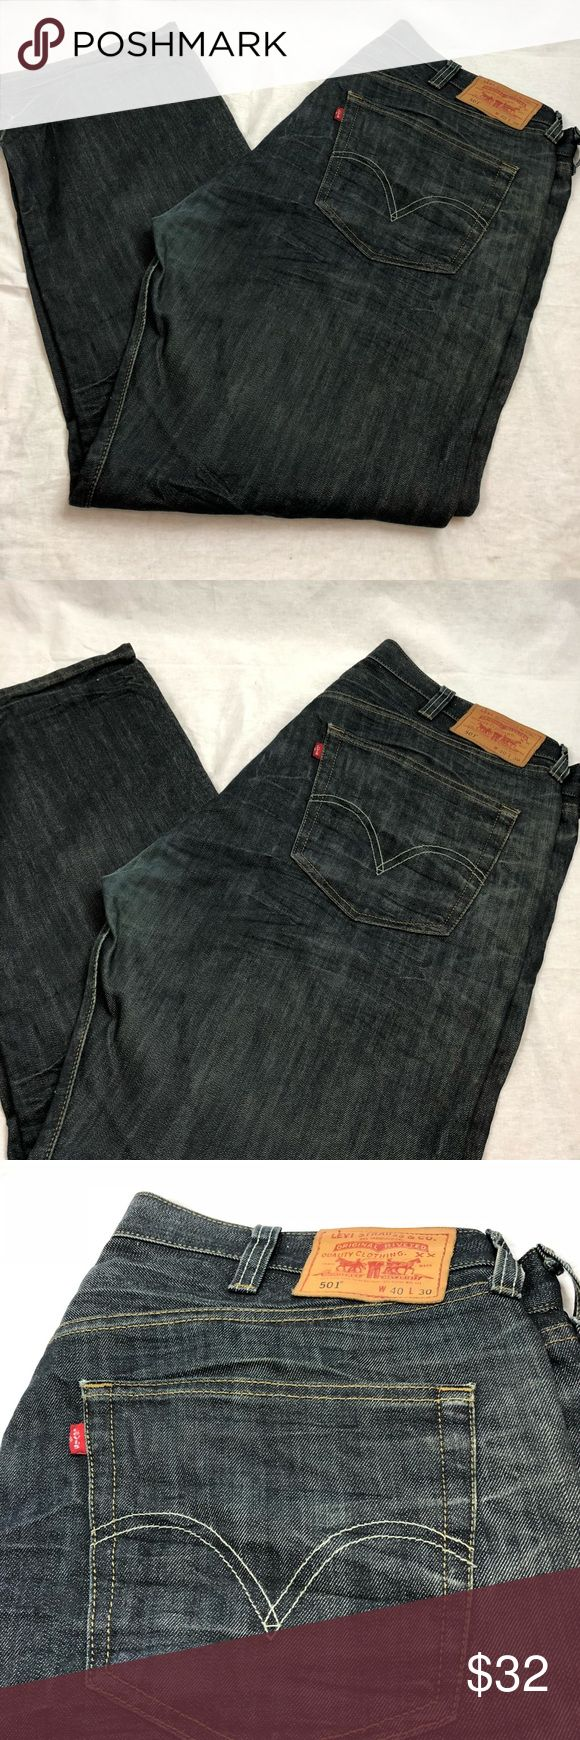 """🍕LEVI Original 501 Straight Leg Button Fly Jeans 🍕Levi 501 straight leg button fly Dark wash pre-owned condition Levi's """"501 jeans. It is a size 40"""" waist X 30 Length inseam Great dark wash, straight leg, button fly jeans. Crisp & clean gently used no flaws overall length 45"""" Levi Jeans Straight"""